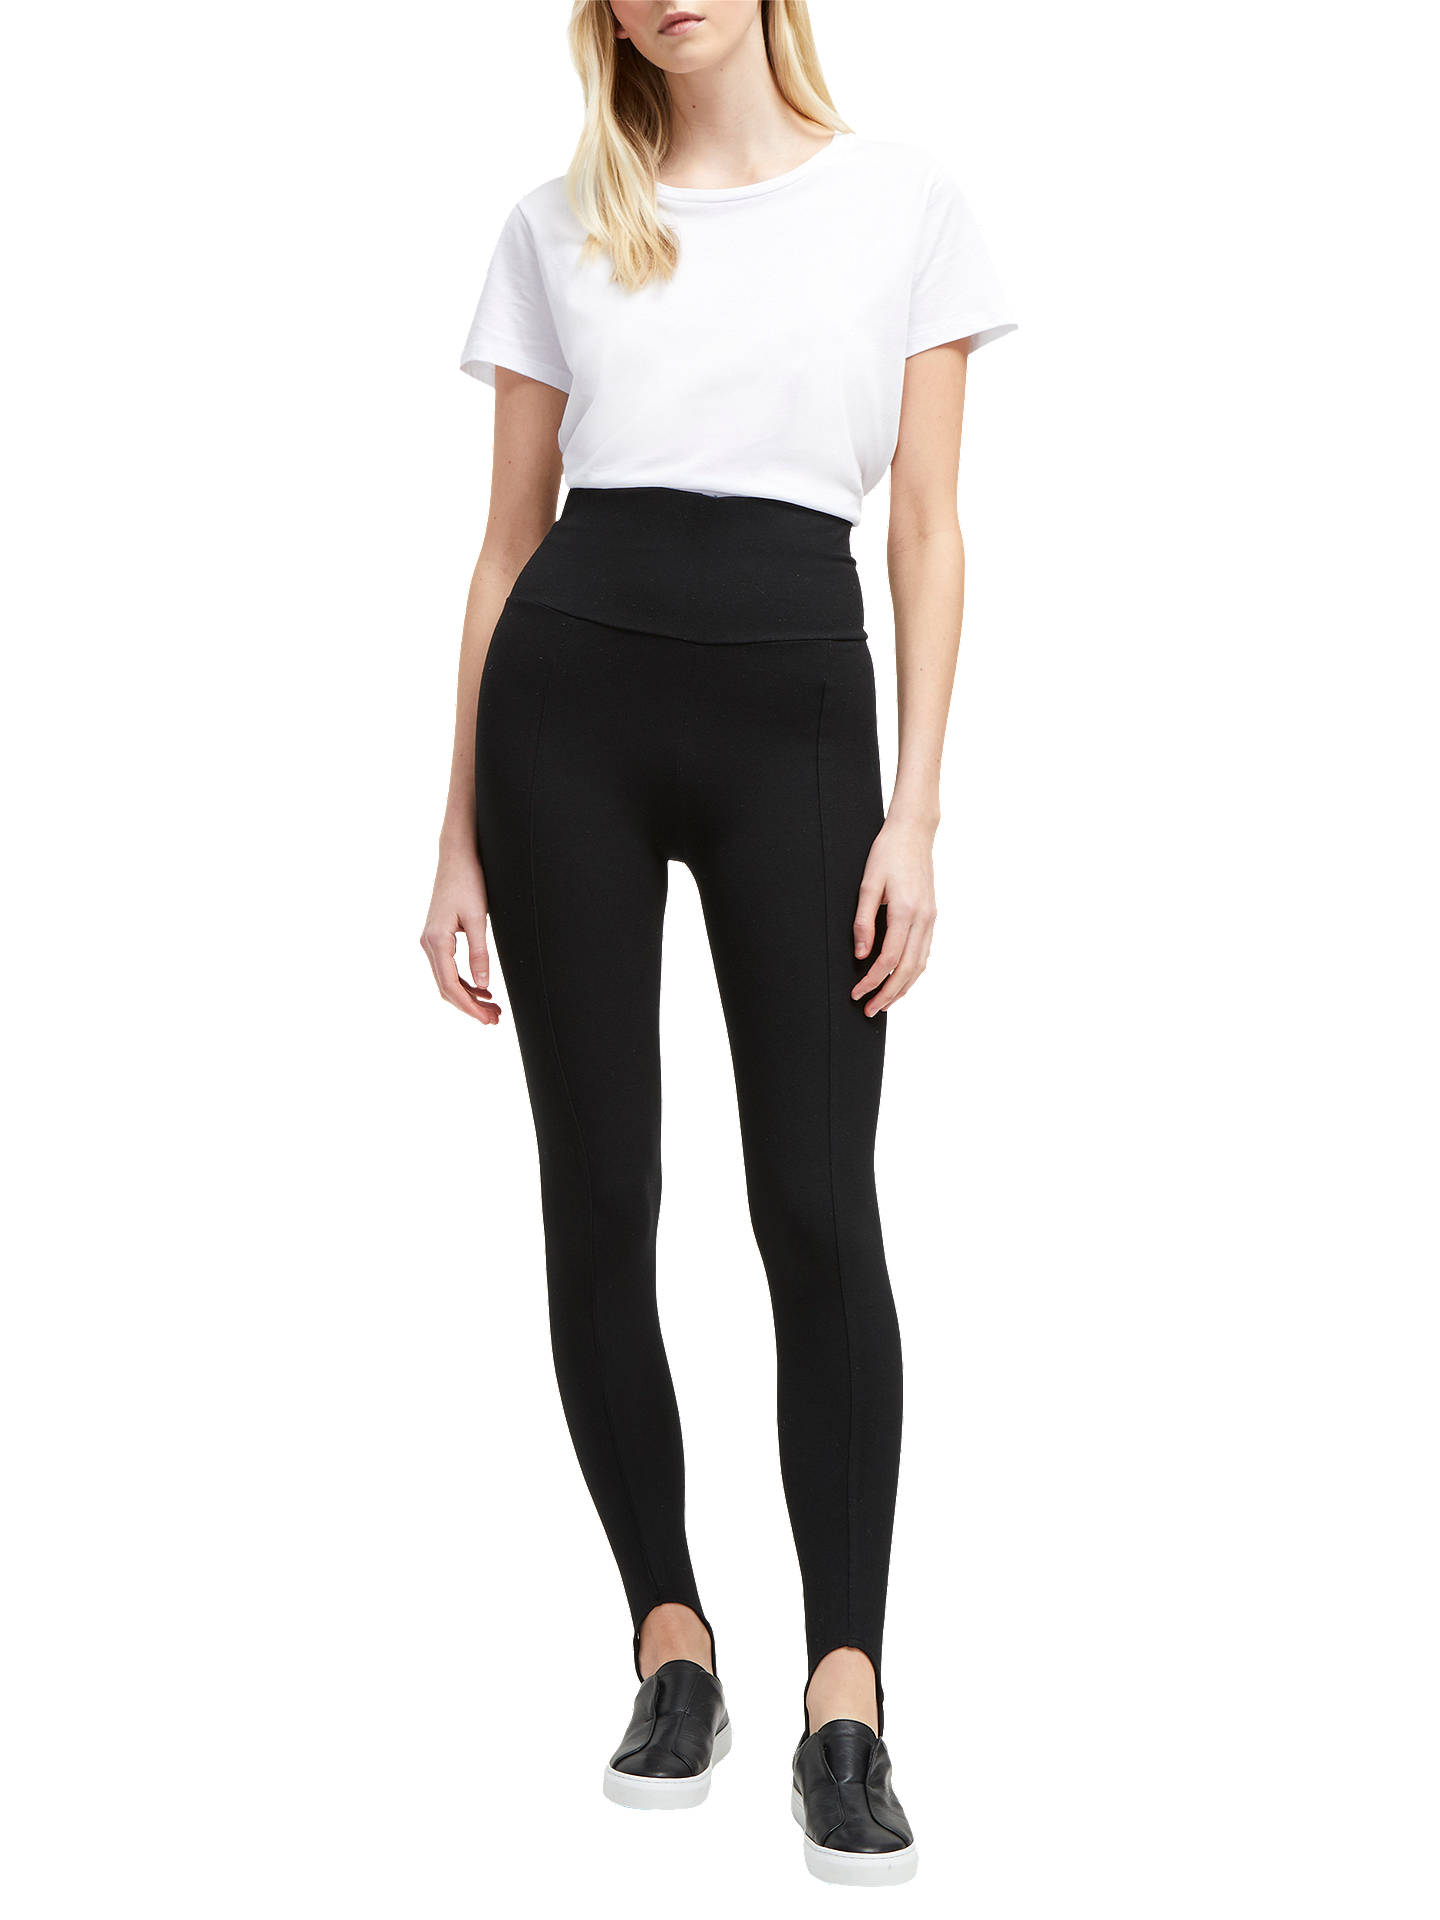 3a332233d5c3a4 Buy French Connection Selby Jersey Stirrup Leggings, Black, XS Online at  johnlewis.com ...